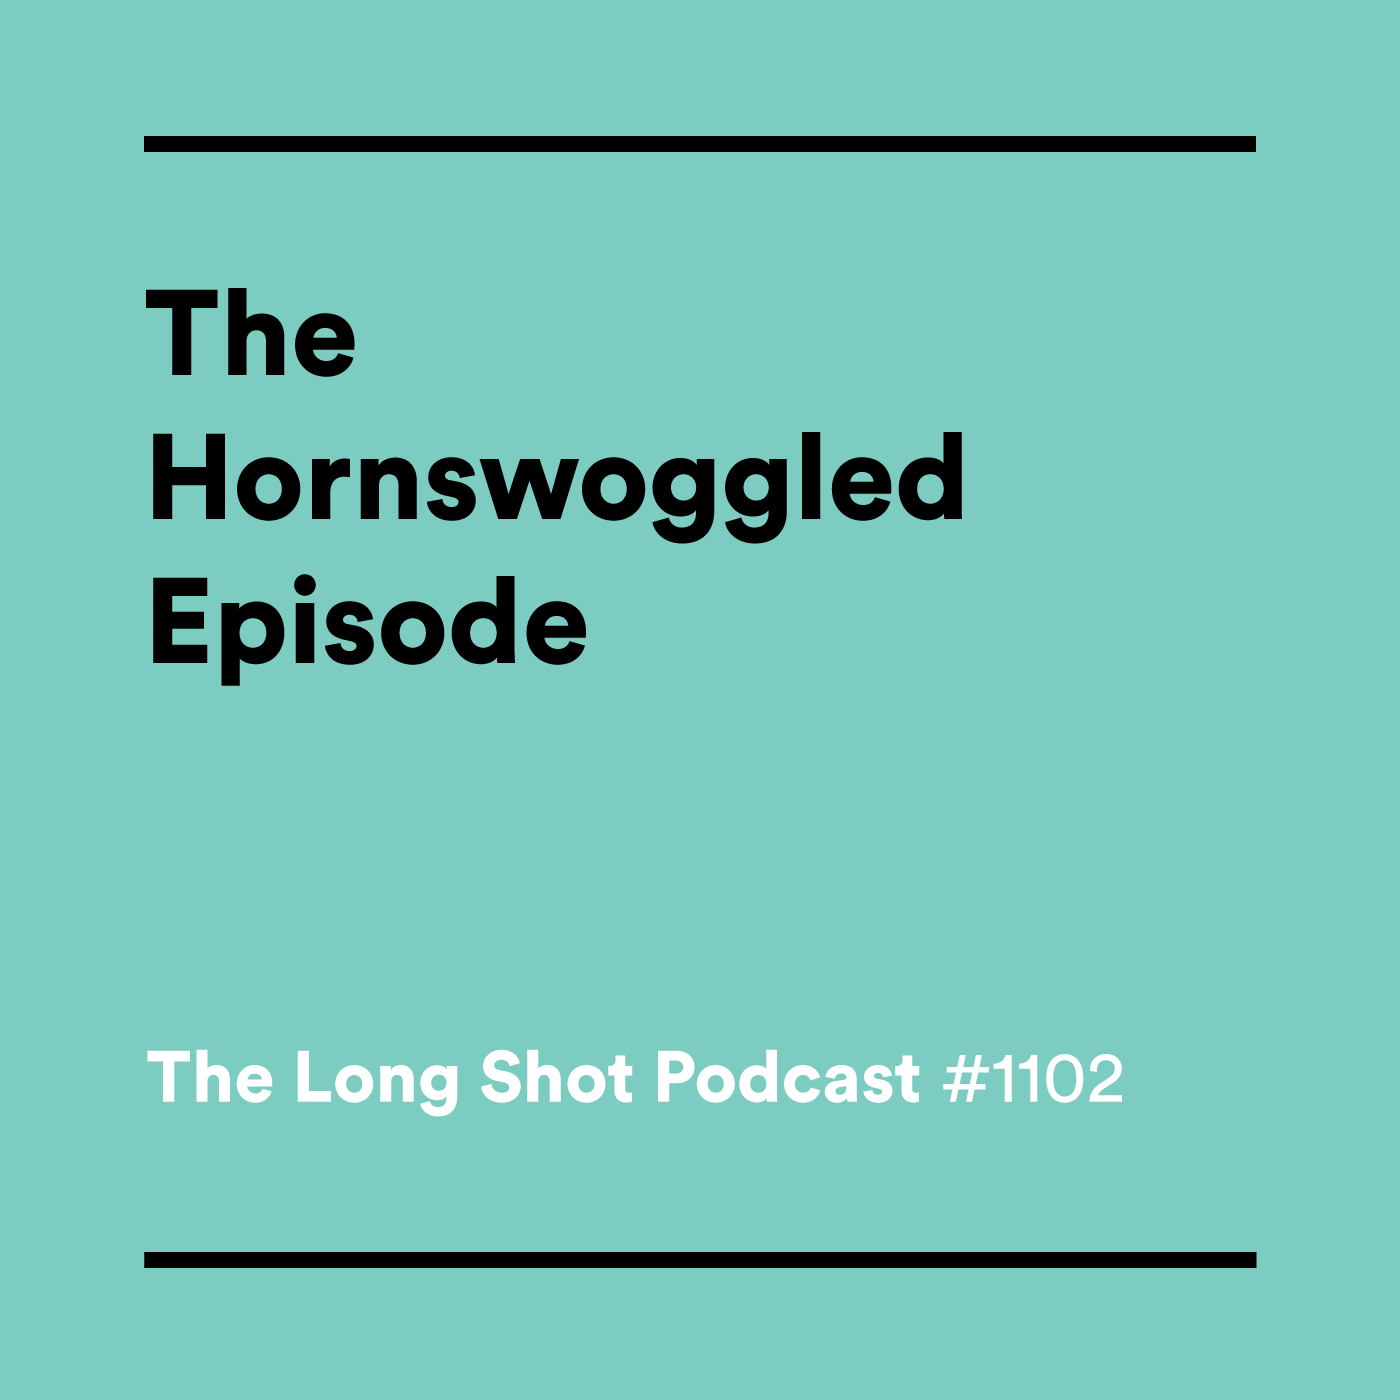 #1102 The Hornswoggled Episode